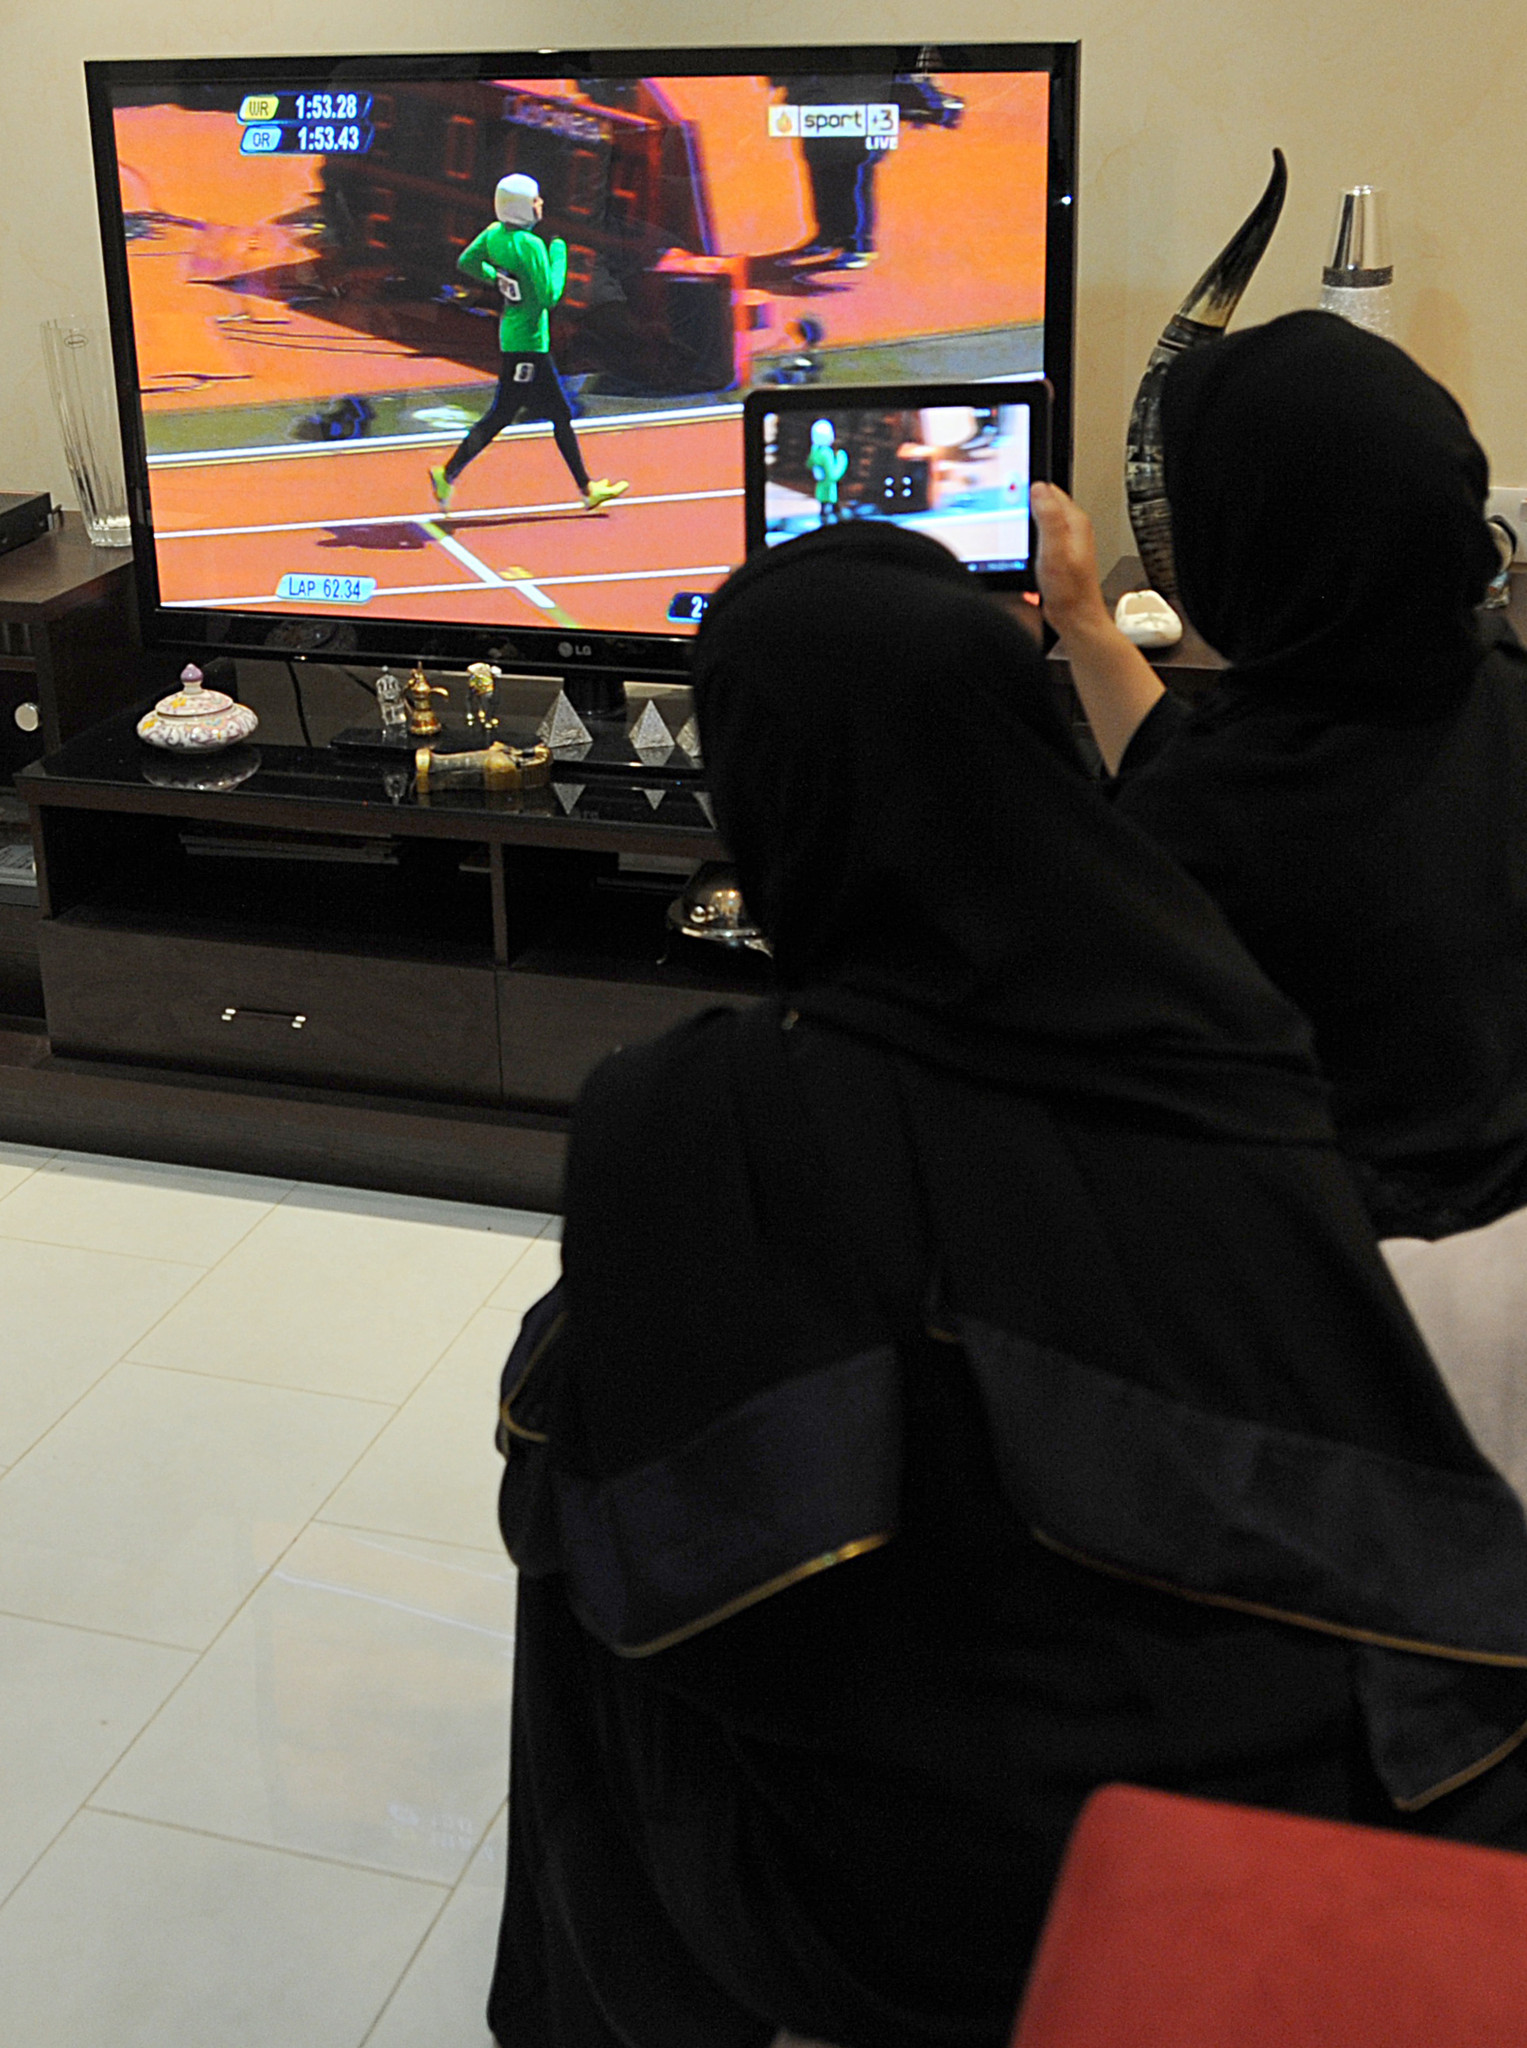 Saudi women sit in a house in Riyadh watching and filming, via a tablet, Saudi Arabia's Sarah Attar competing in the women's 800m heats at the London 2012 Olympics ©Getty Images